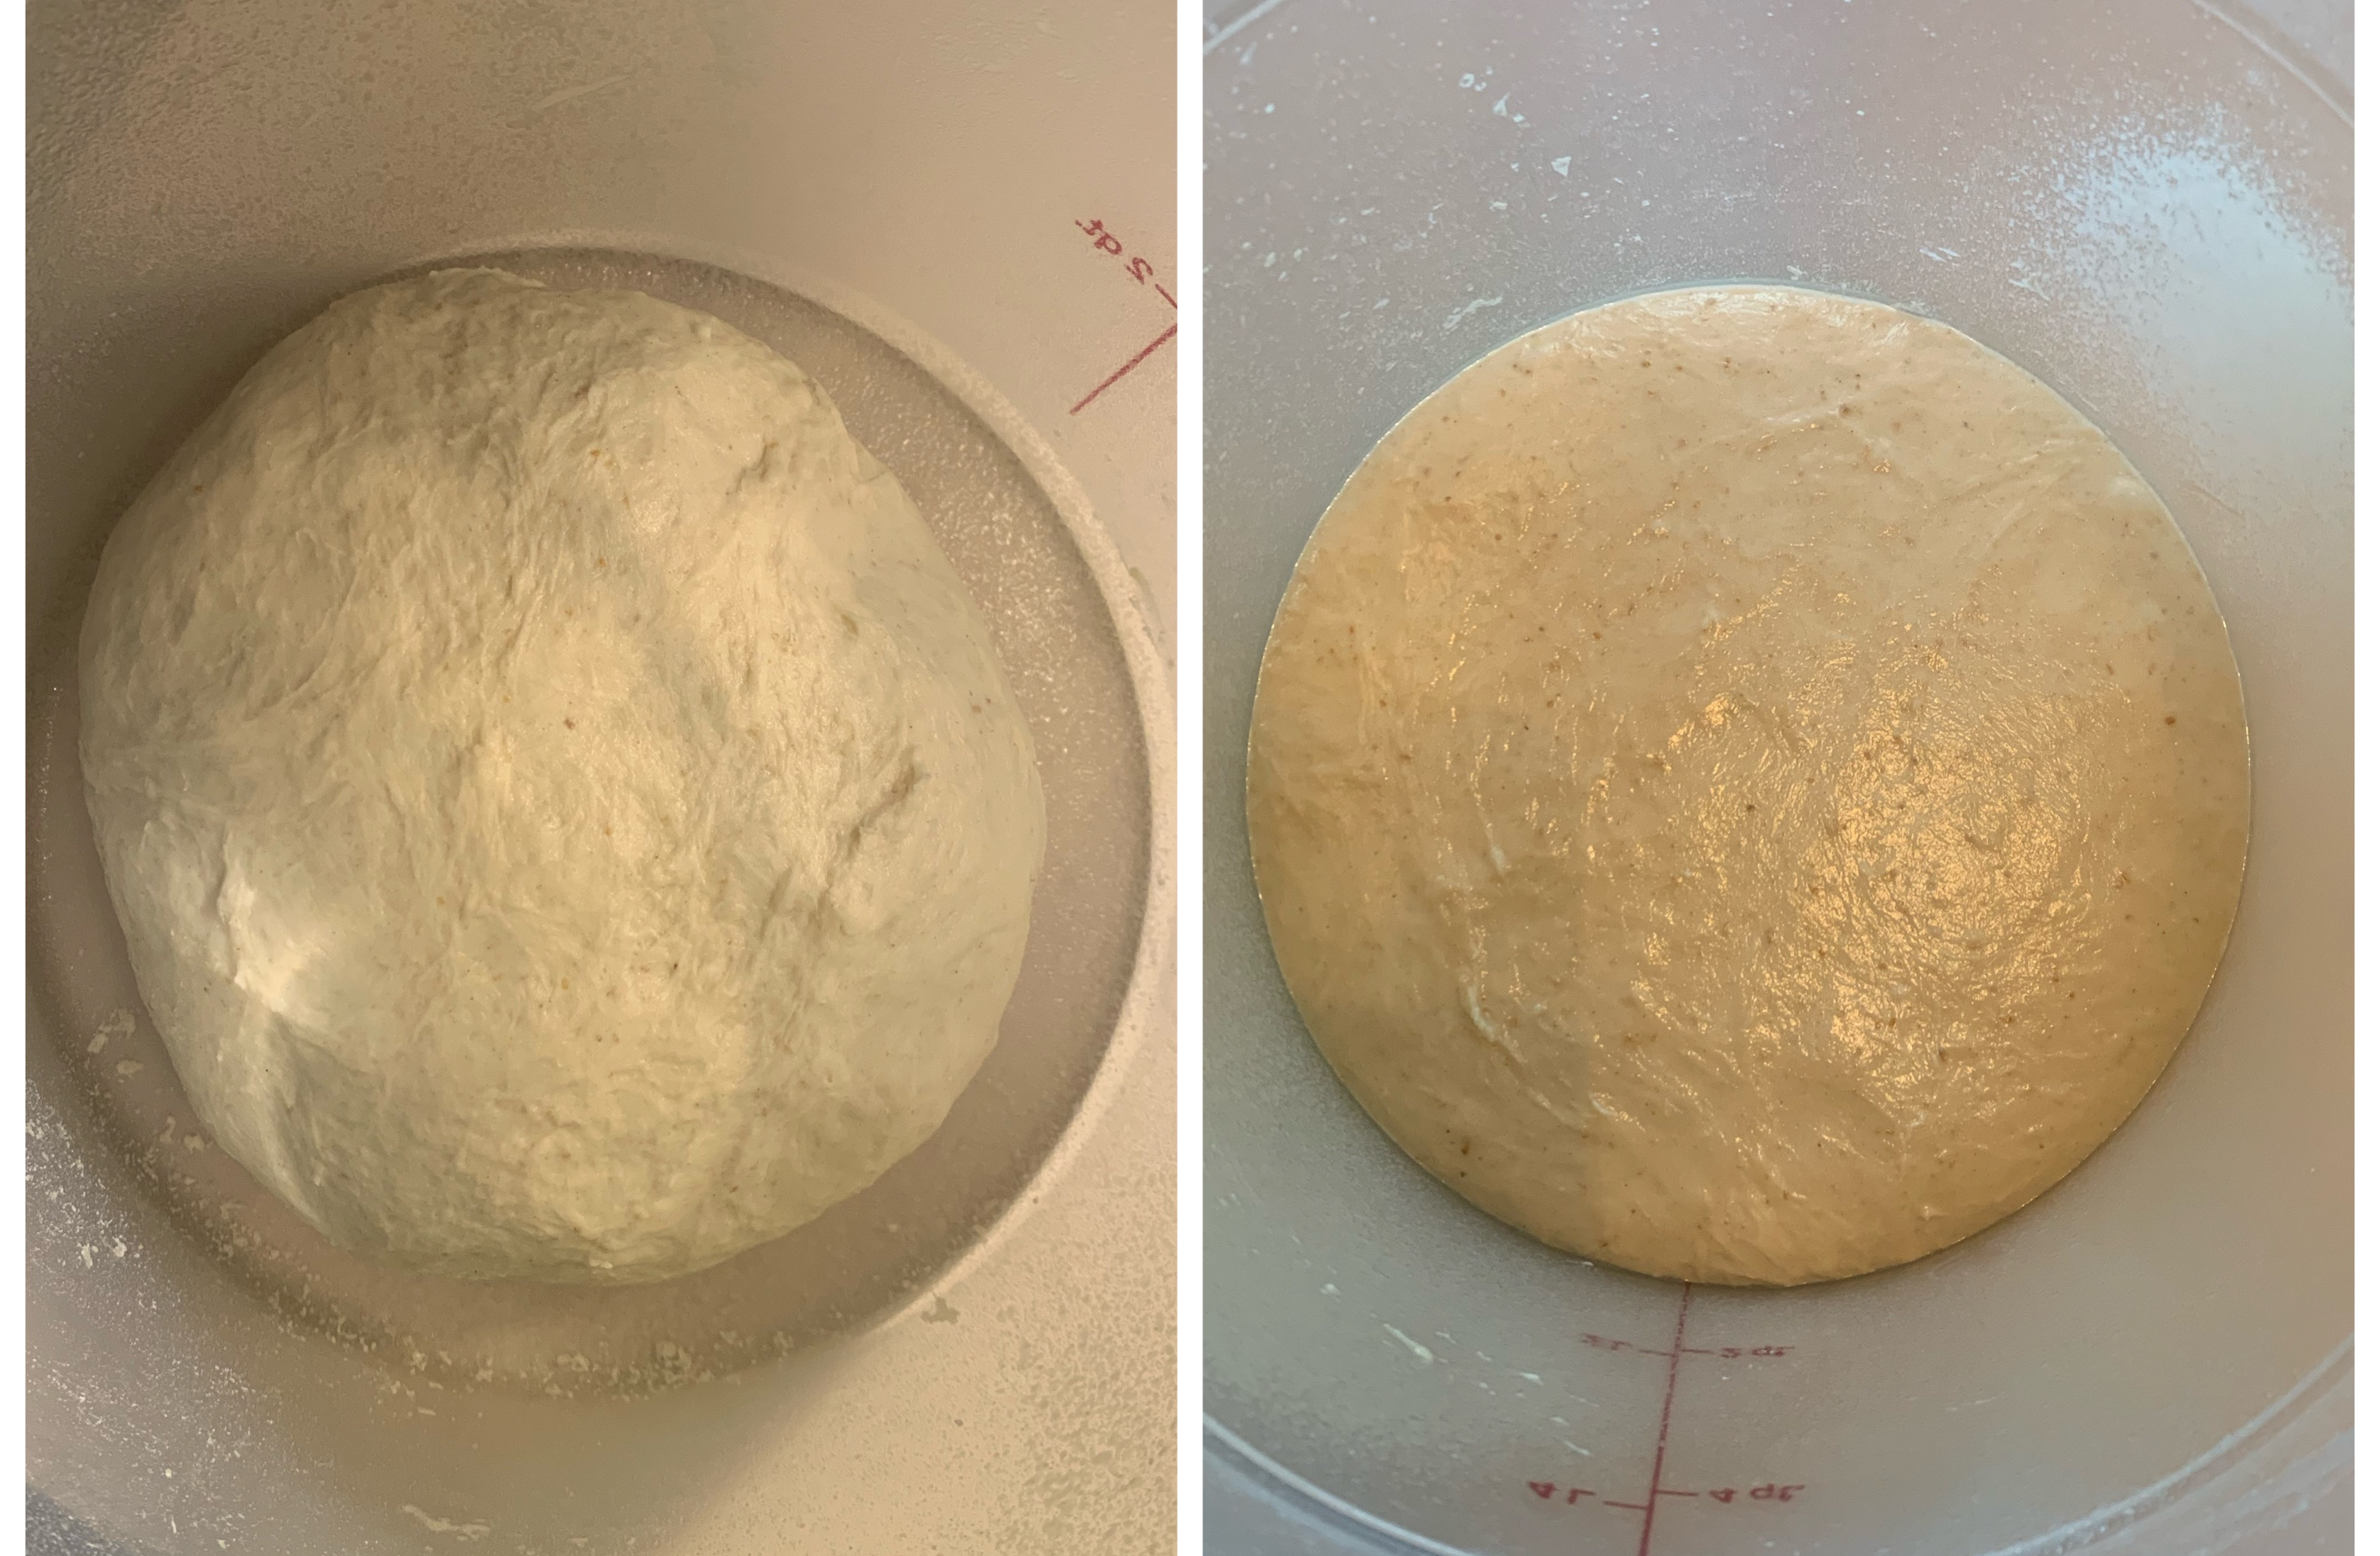 Left: recently kneaded dough in cambro. It doesn't touch the sides. Right: same dough, but it has expanded to touch the sides and is shiny and smooth.